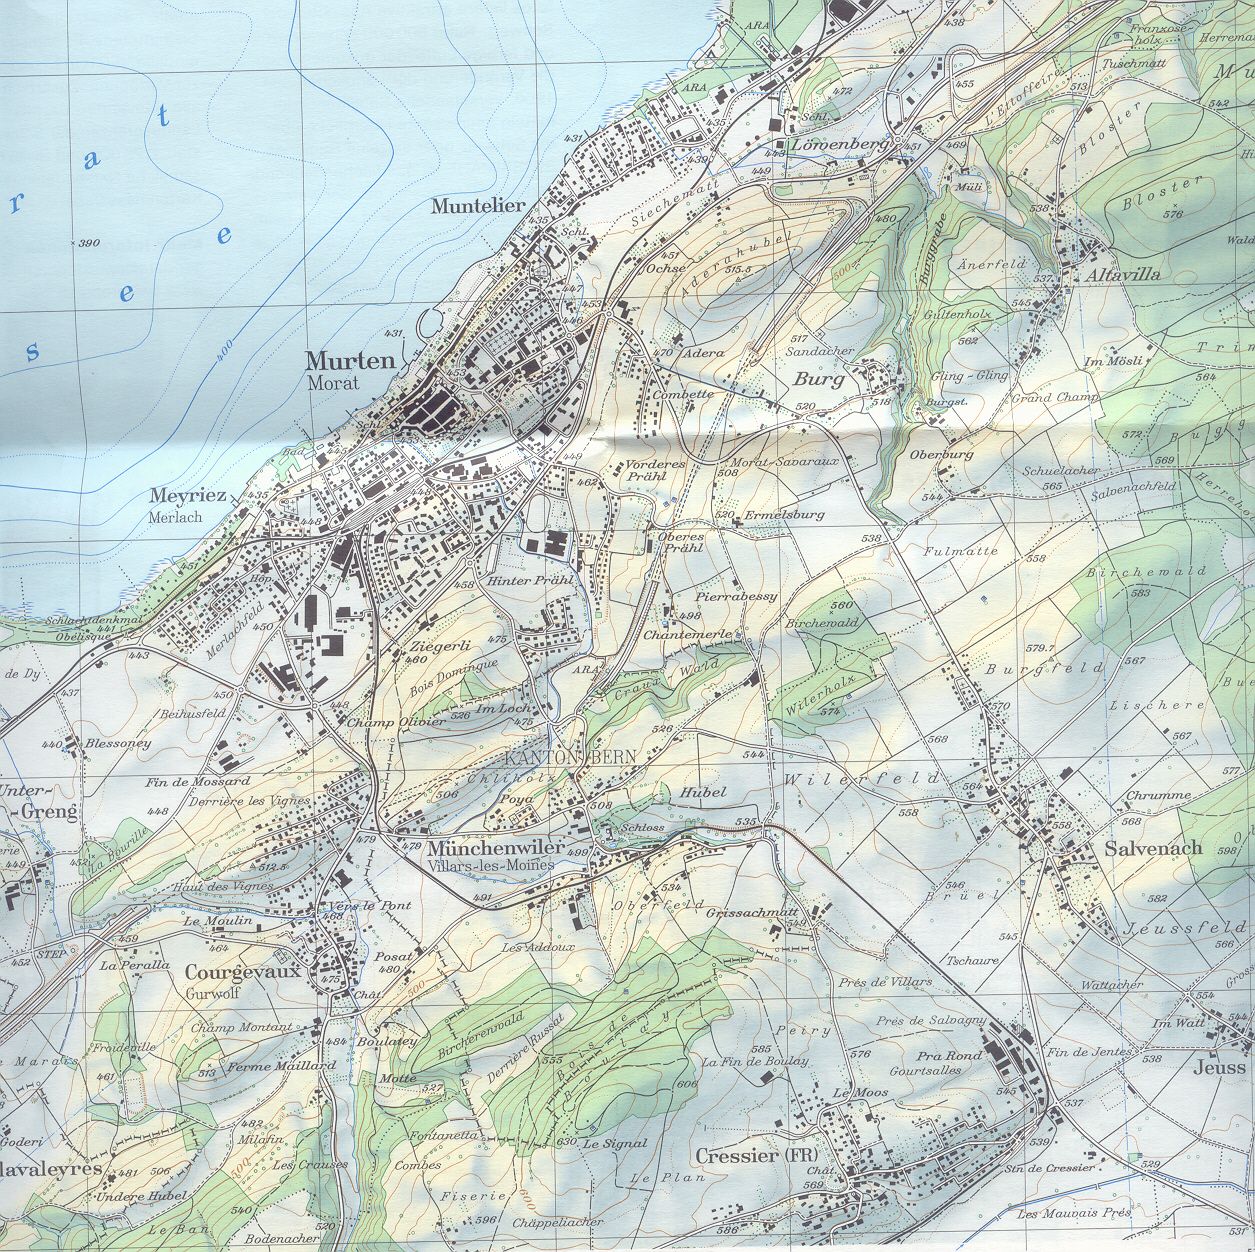 Modern map showing the battlefield of Murten